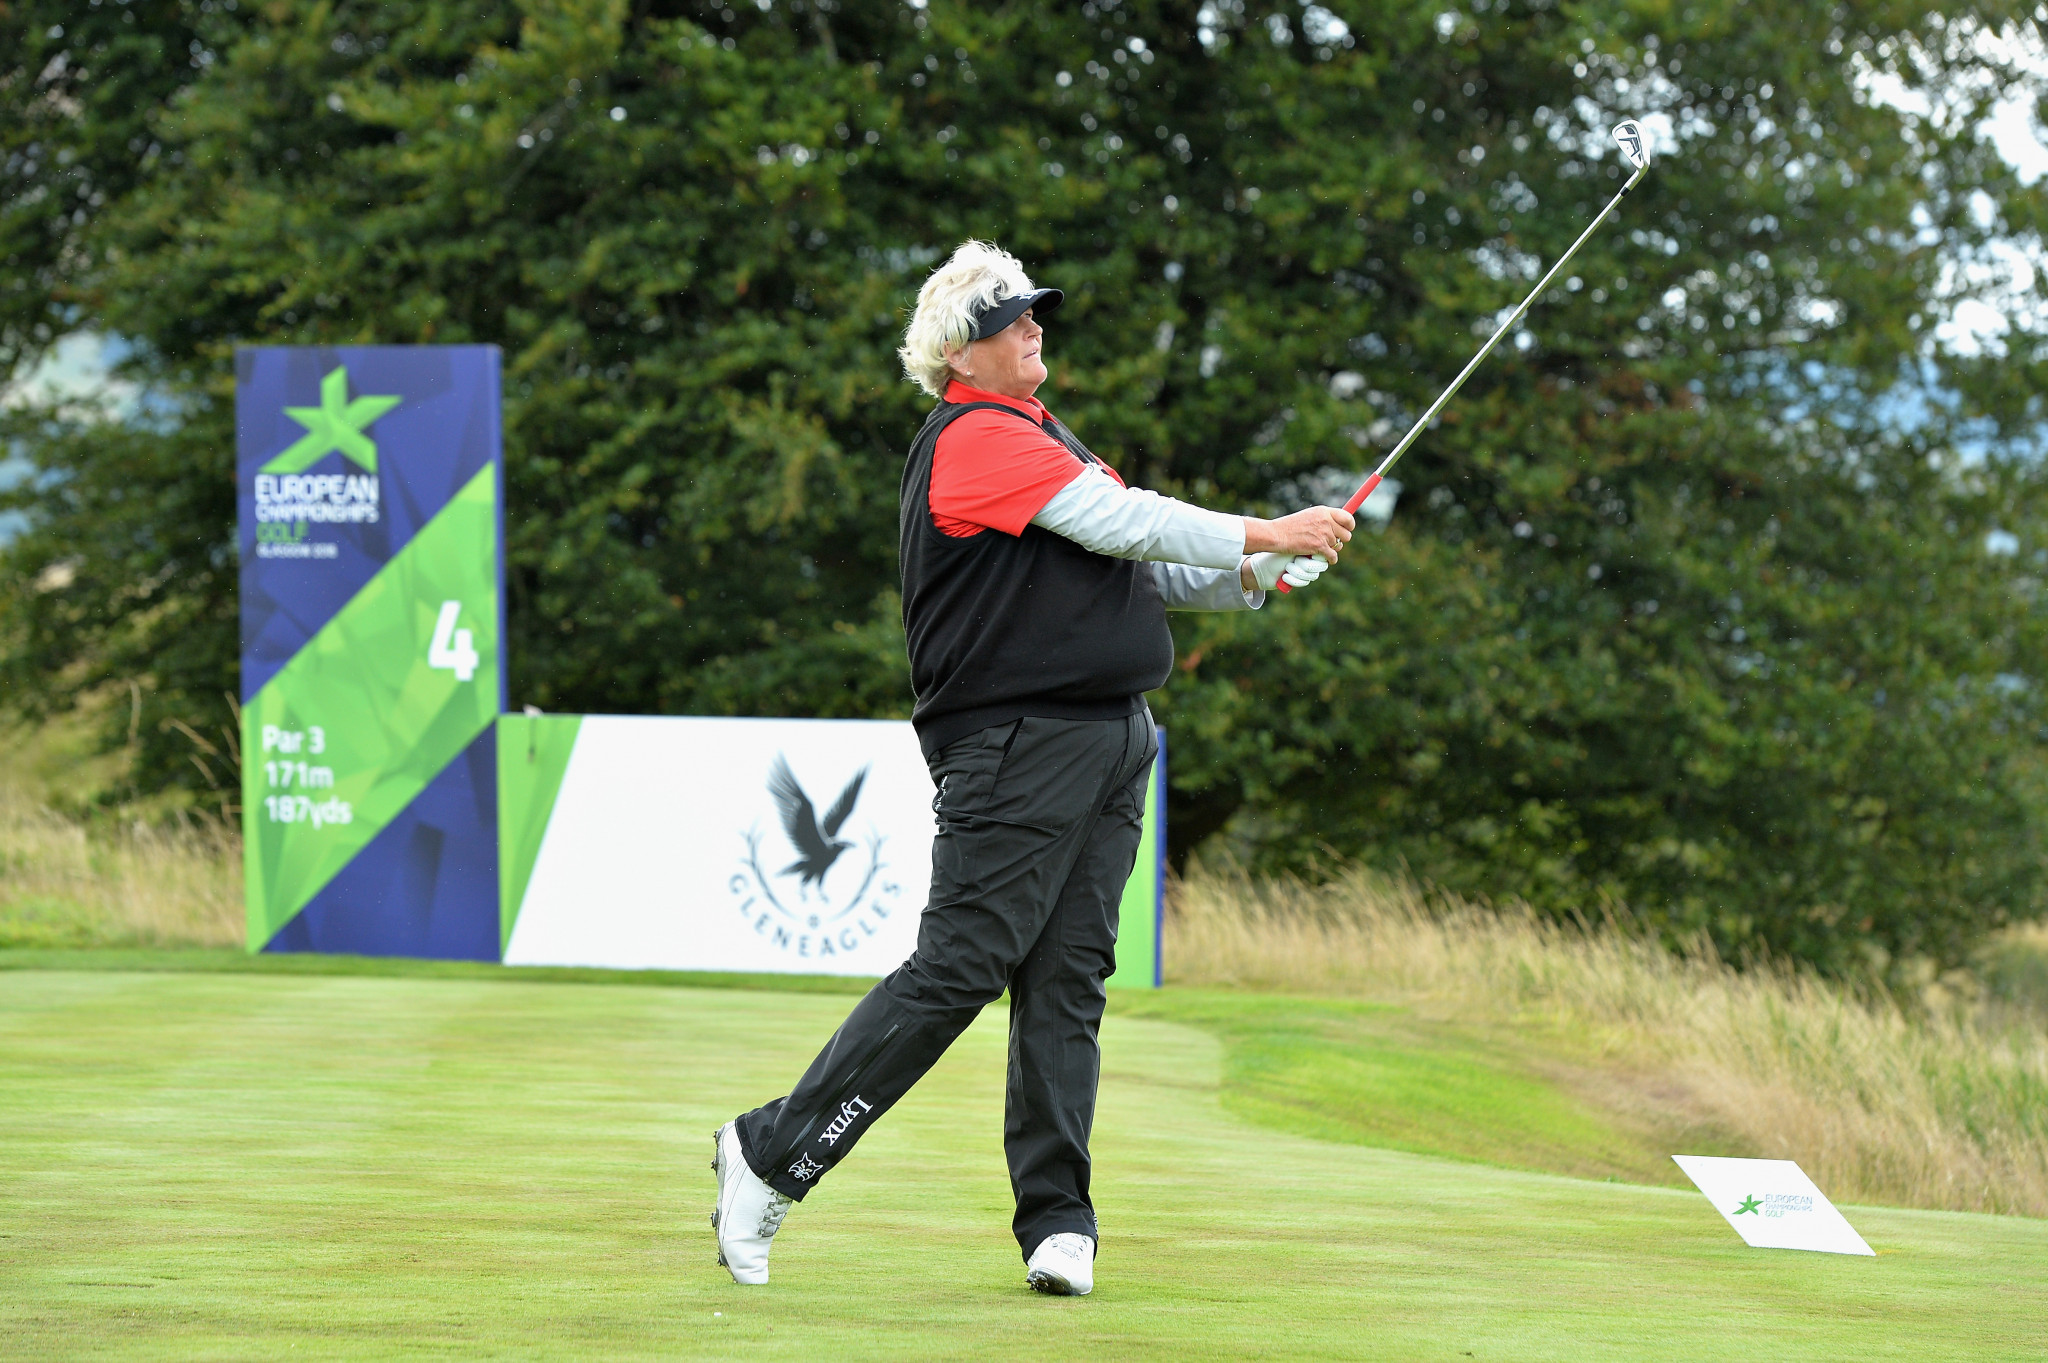 Britain's Laura Davies and Georgia Hall booked a place in the women's semi-finals ©Getty Images